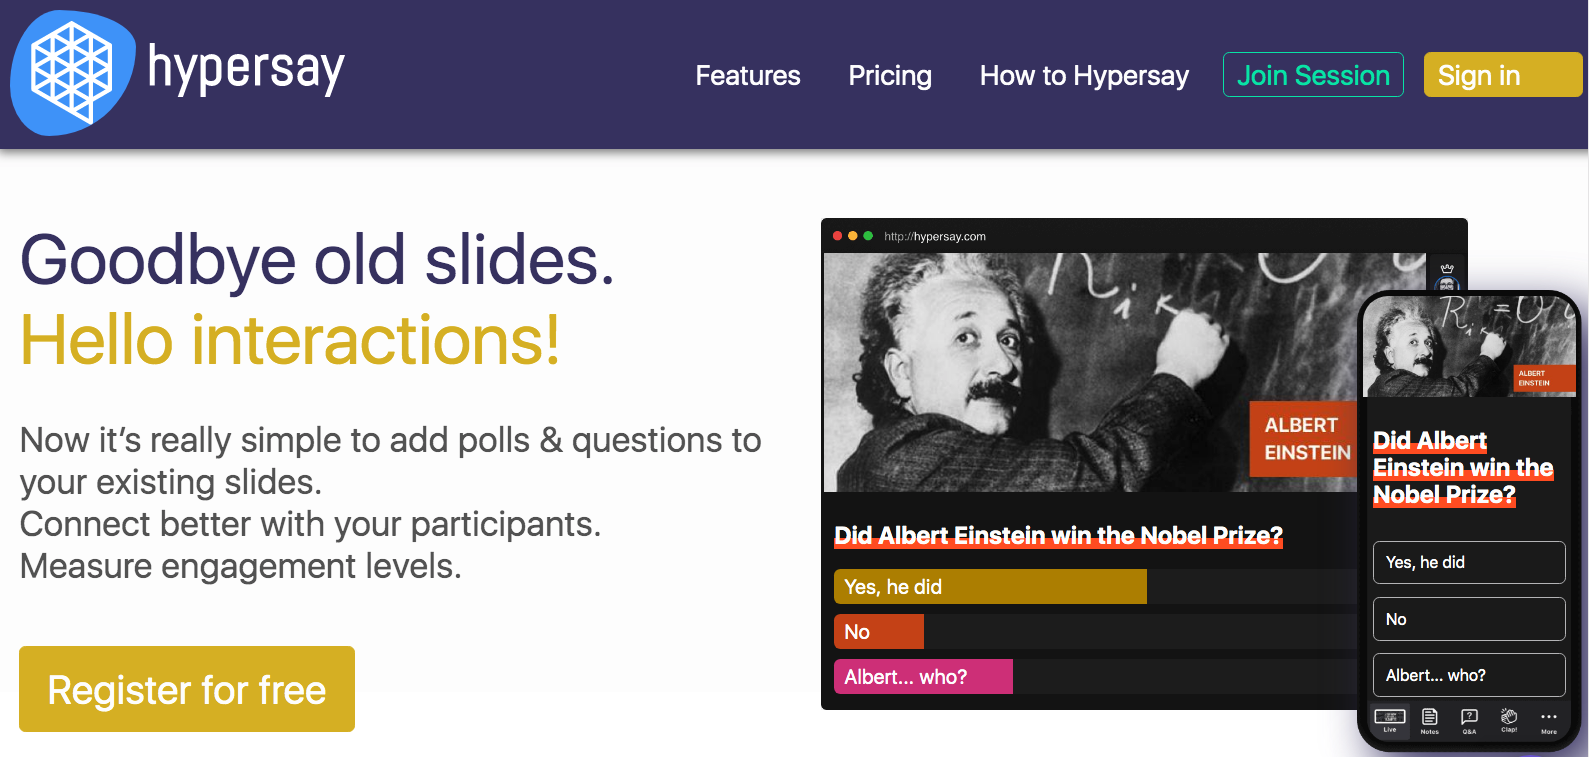 Review Hypersay Education: Goodbye old slides. Hello interactions! - Appvizer